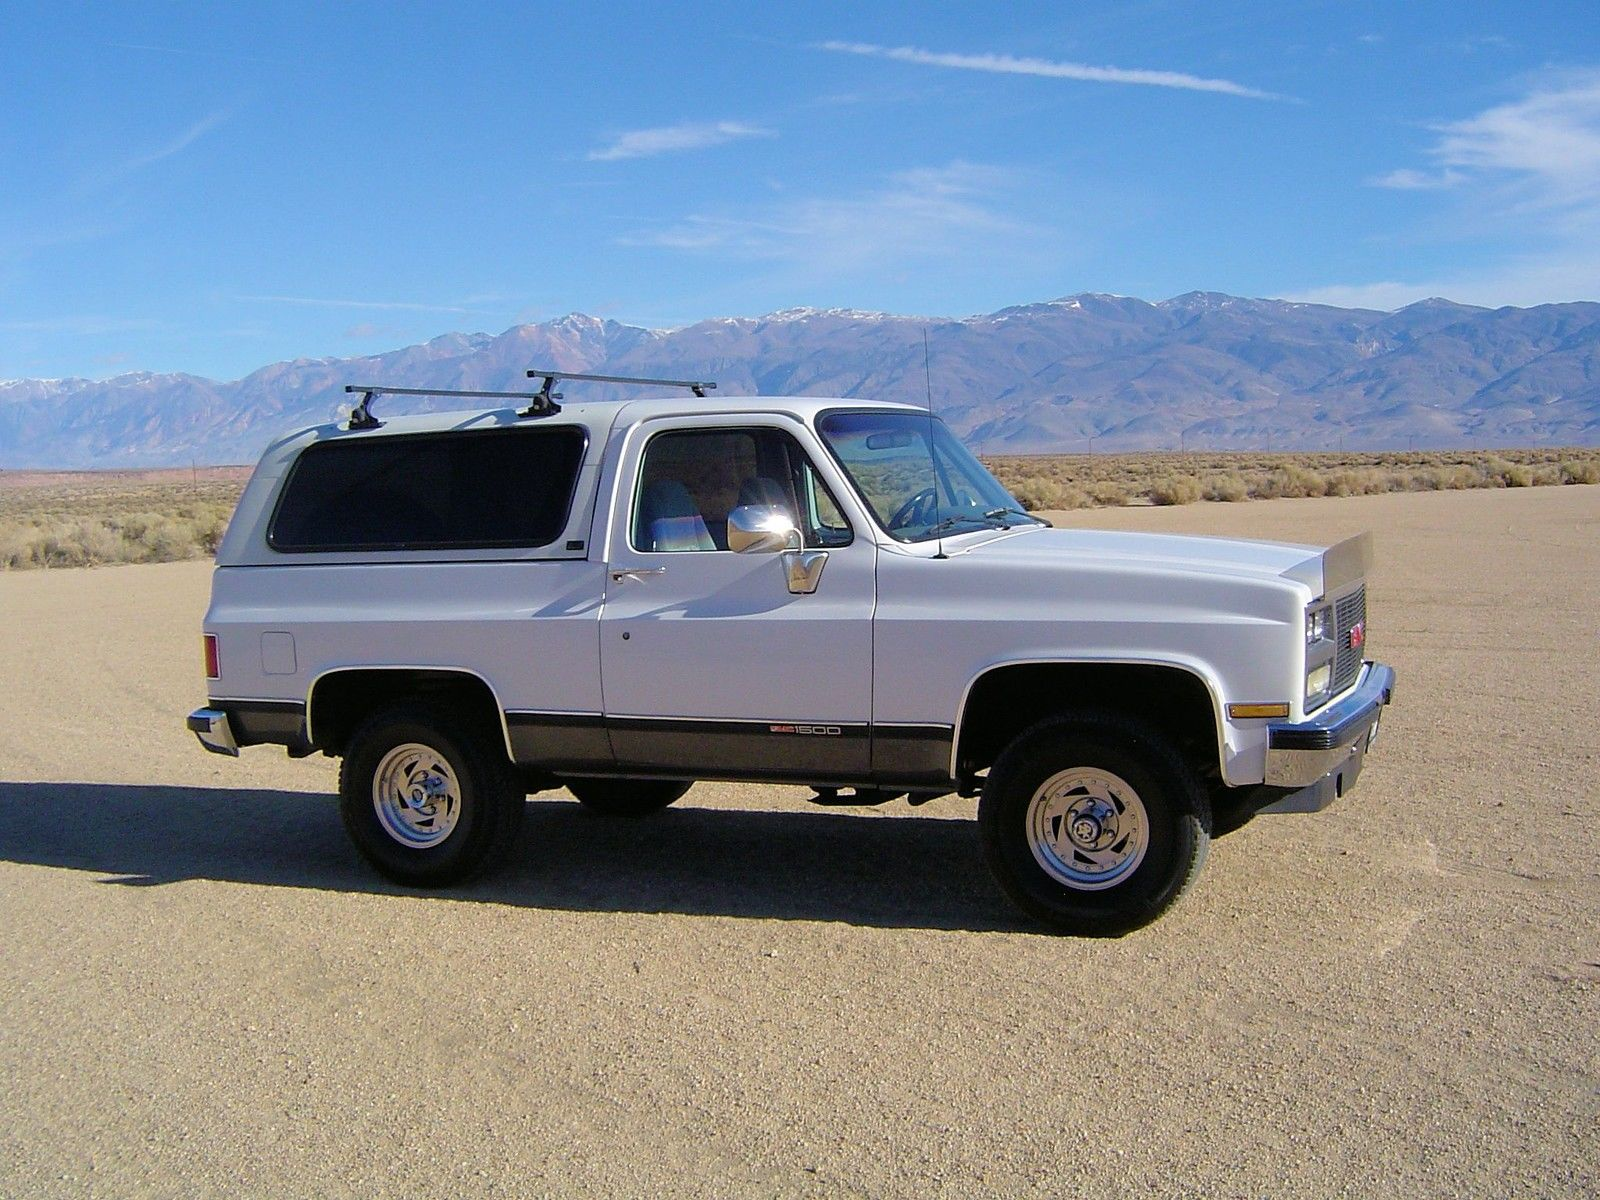 1989 Gmc Jimmy 4x4 California Truck Removable Top No Rust Very Nice Xle